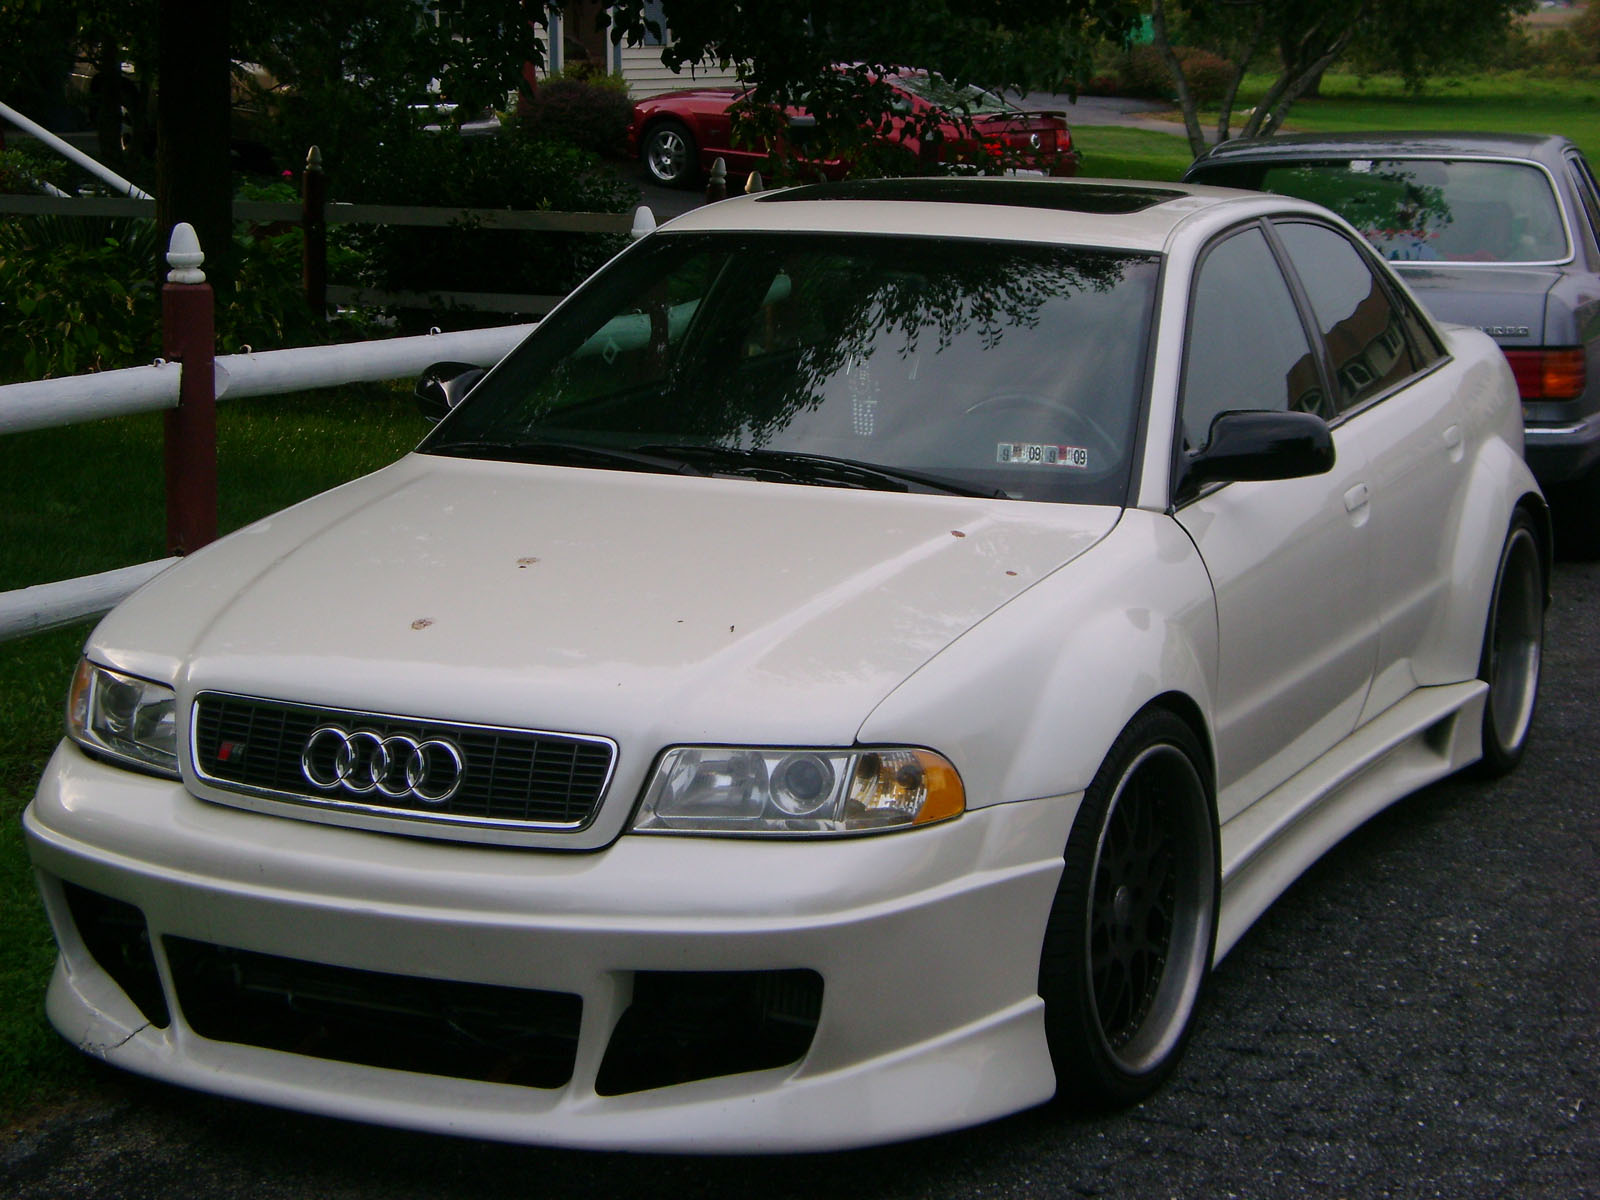 2000 Audi S4 Photos  Informations  Articles